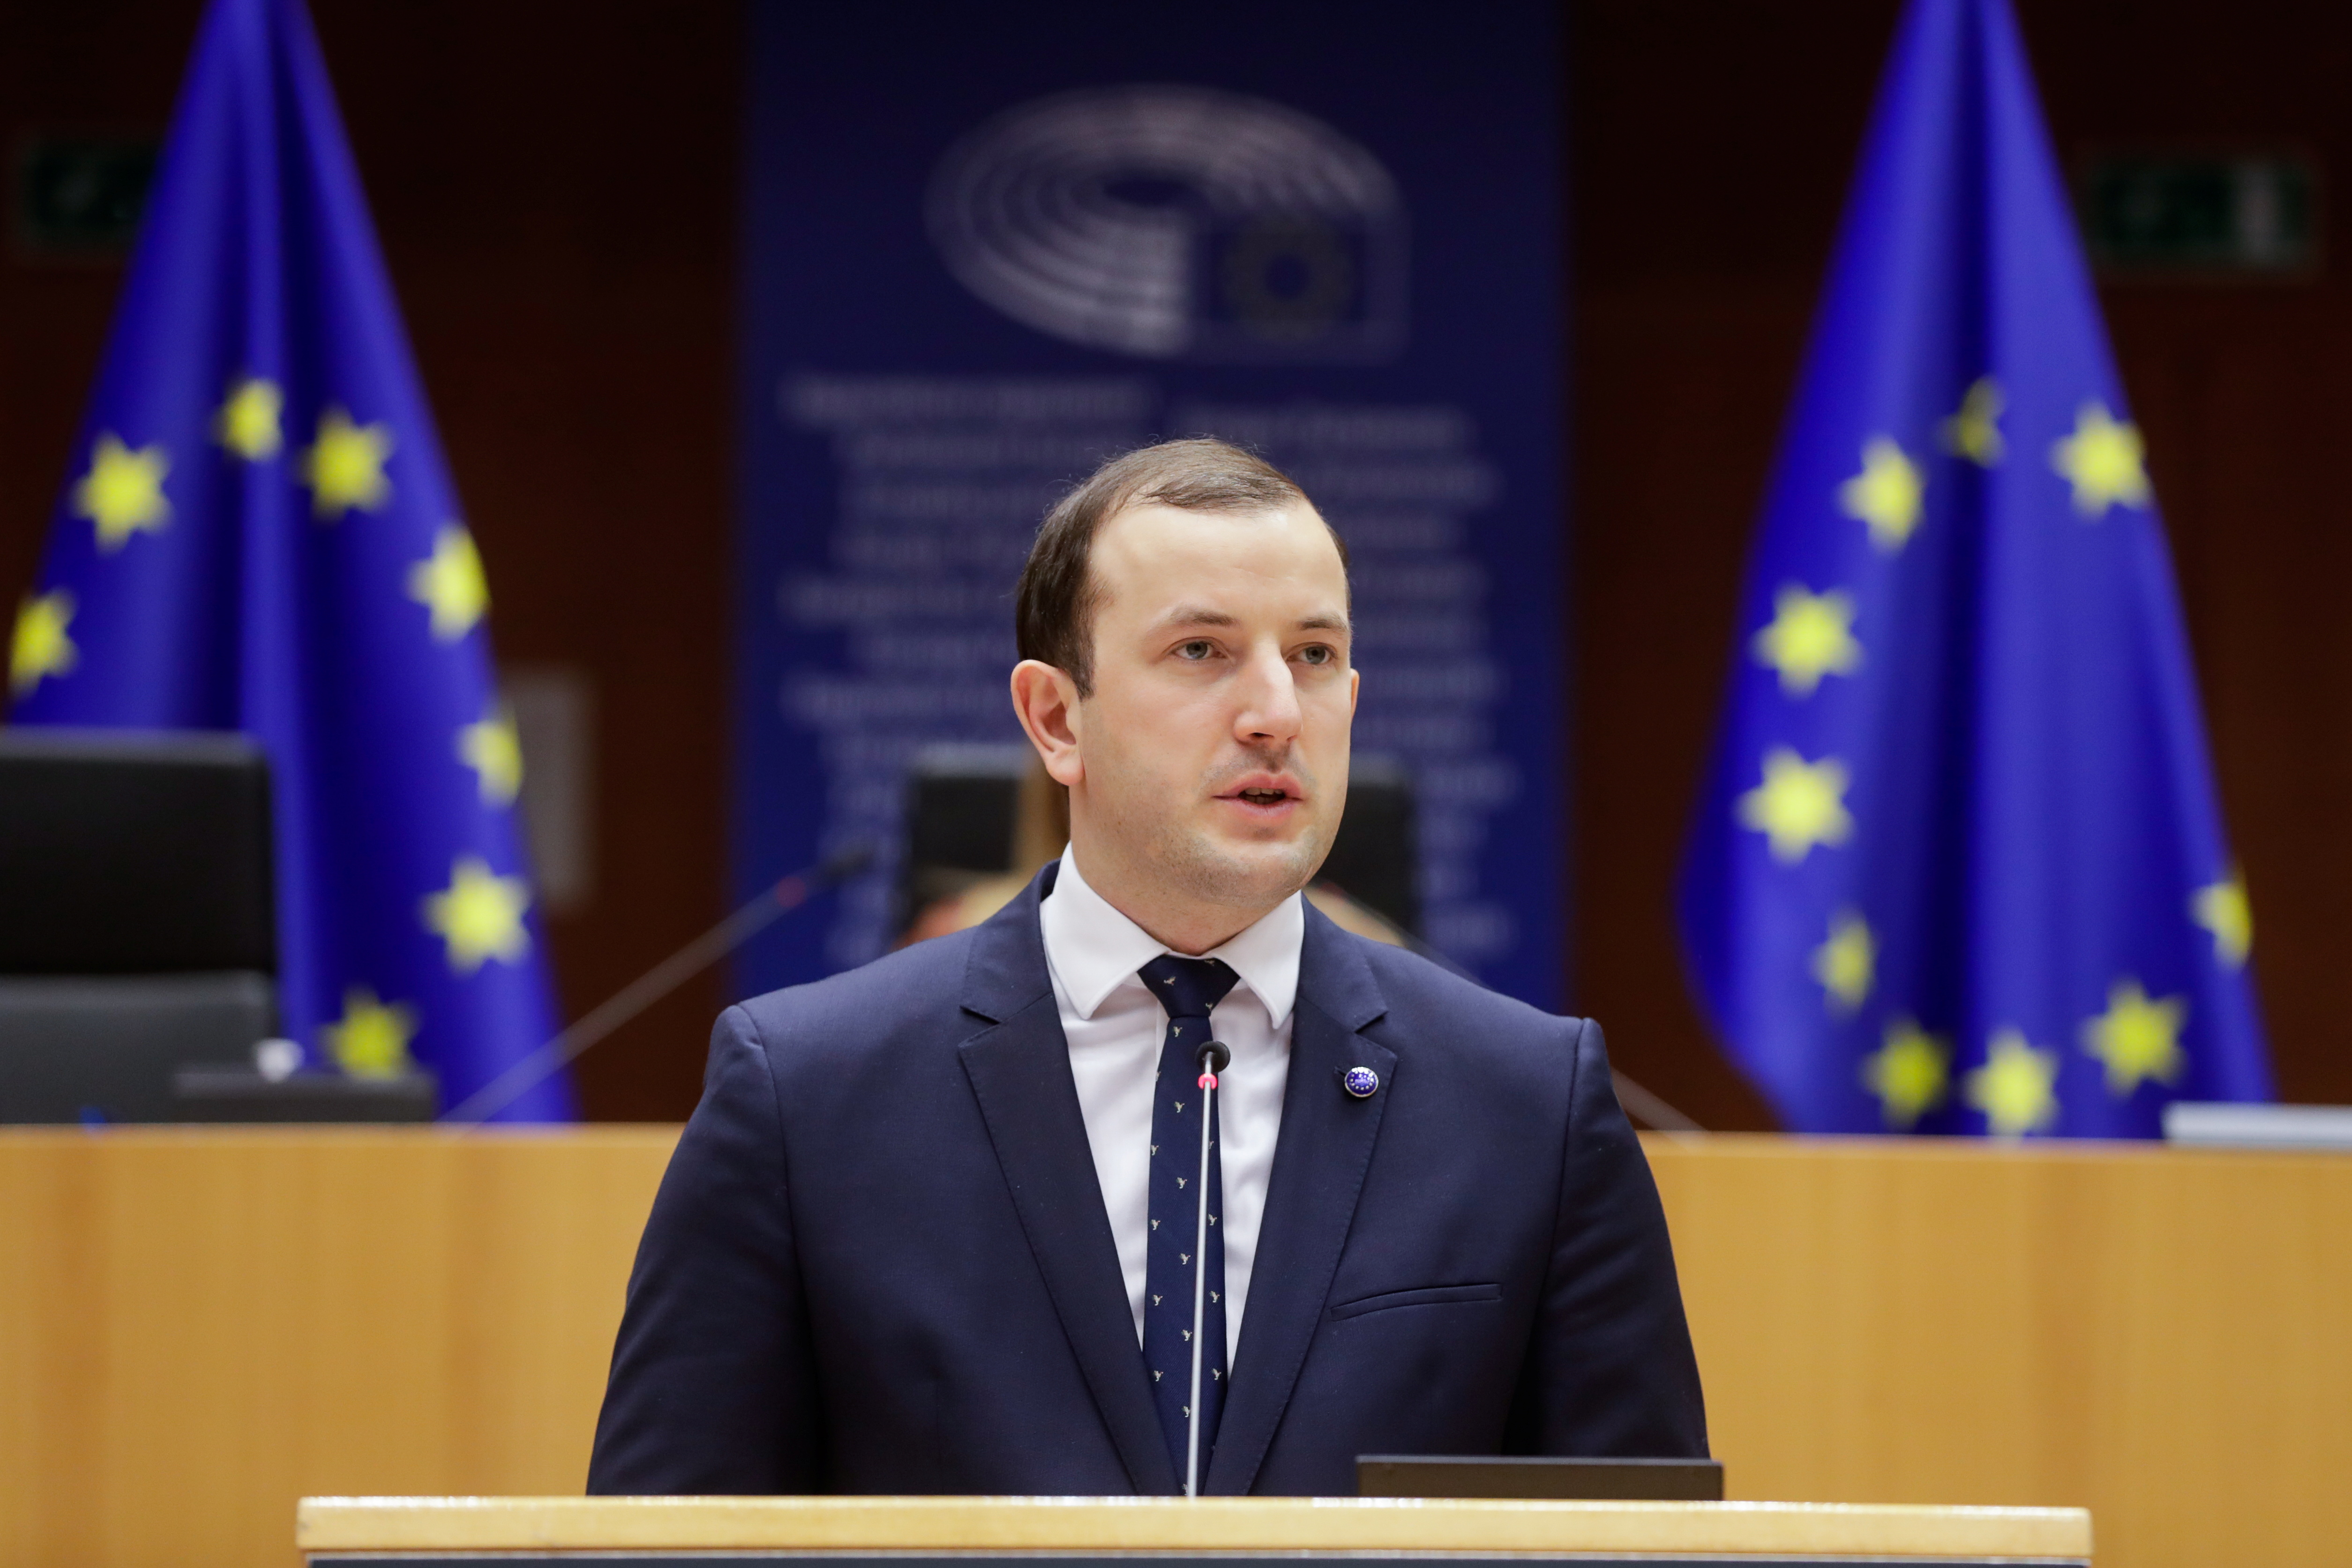 EU Environment, Oceans and Fisheries Commissioner Virginijus Sinkevicius speaks during a plenary session of the European Parliament in Brussels, Belgium, March 9, 2021. Stephanie Lecocq/Pool via REUTERS